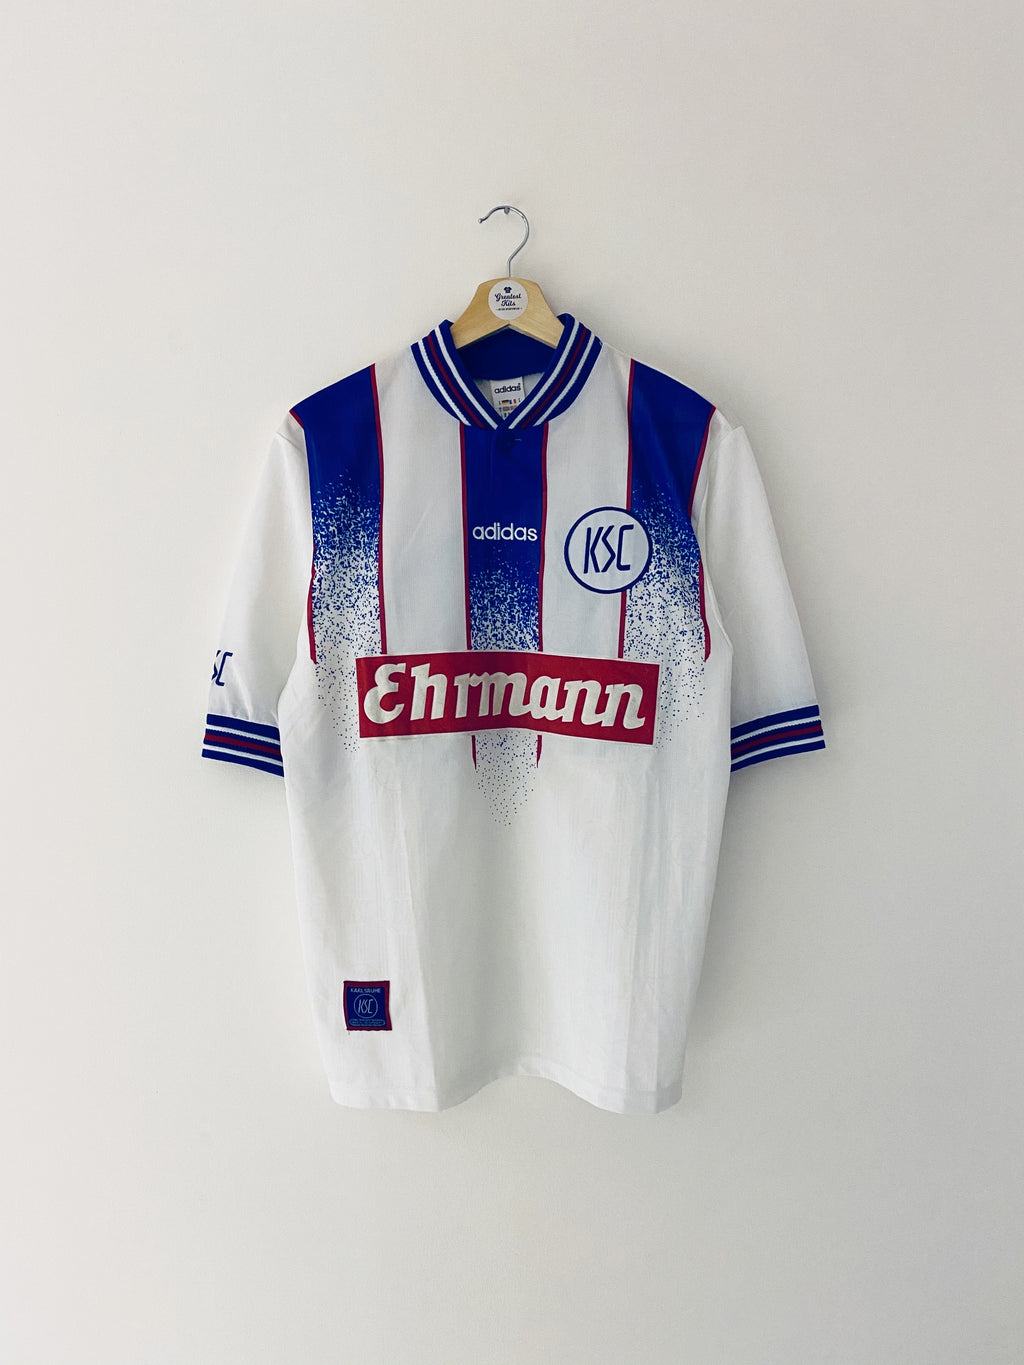 1996/98 Karlsruher Home Shirt #10 (S) 8.5/10